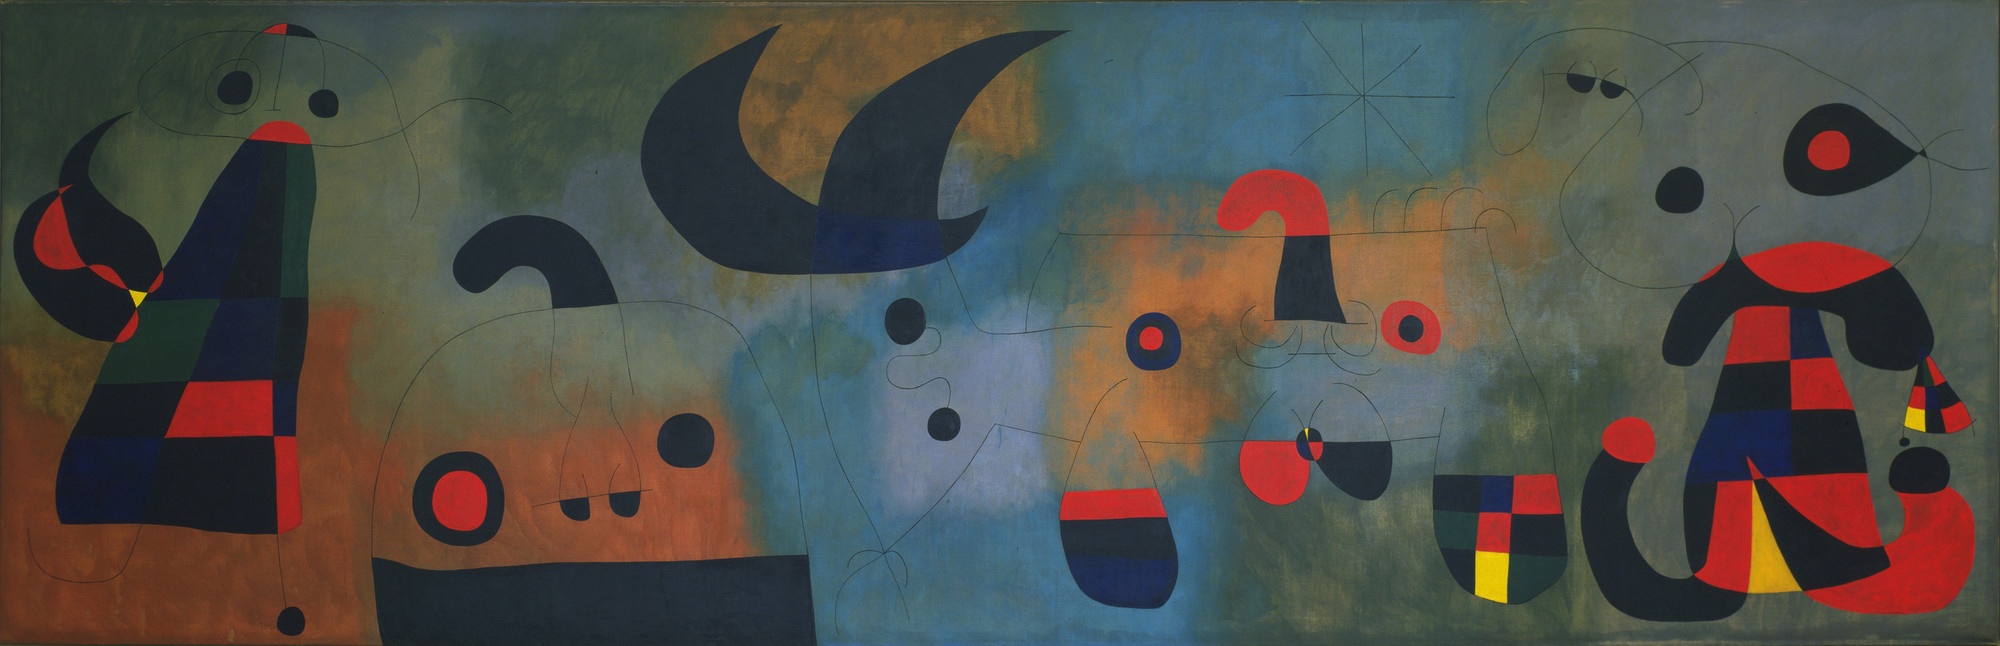 Joan Miró. Mural Painting. Barcelona, October 18, 1950-January 26, 1951